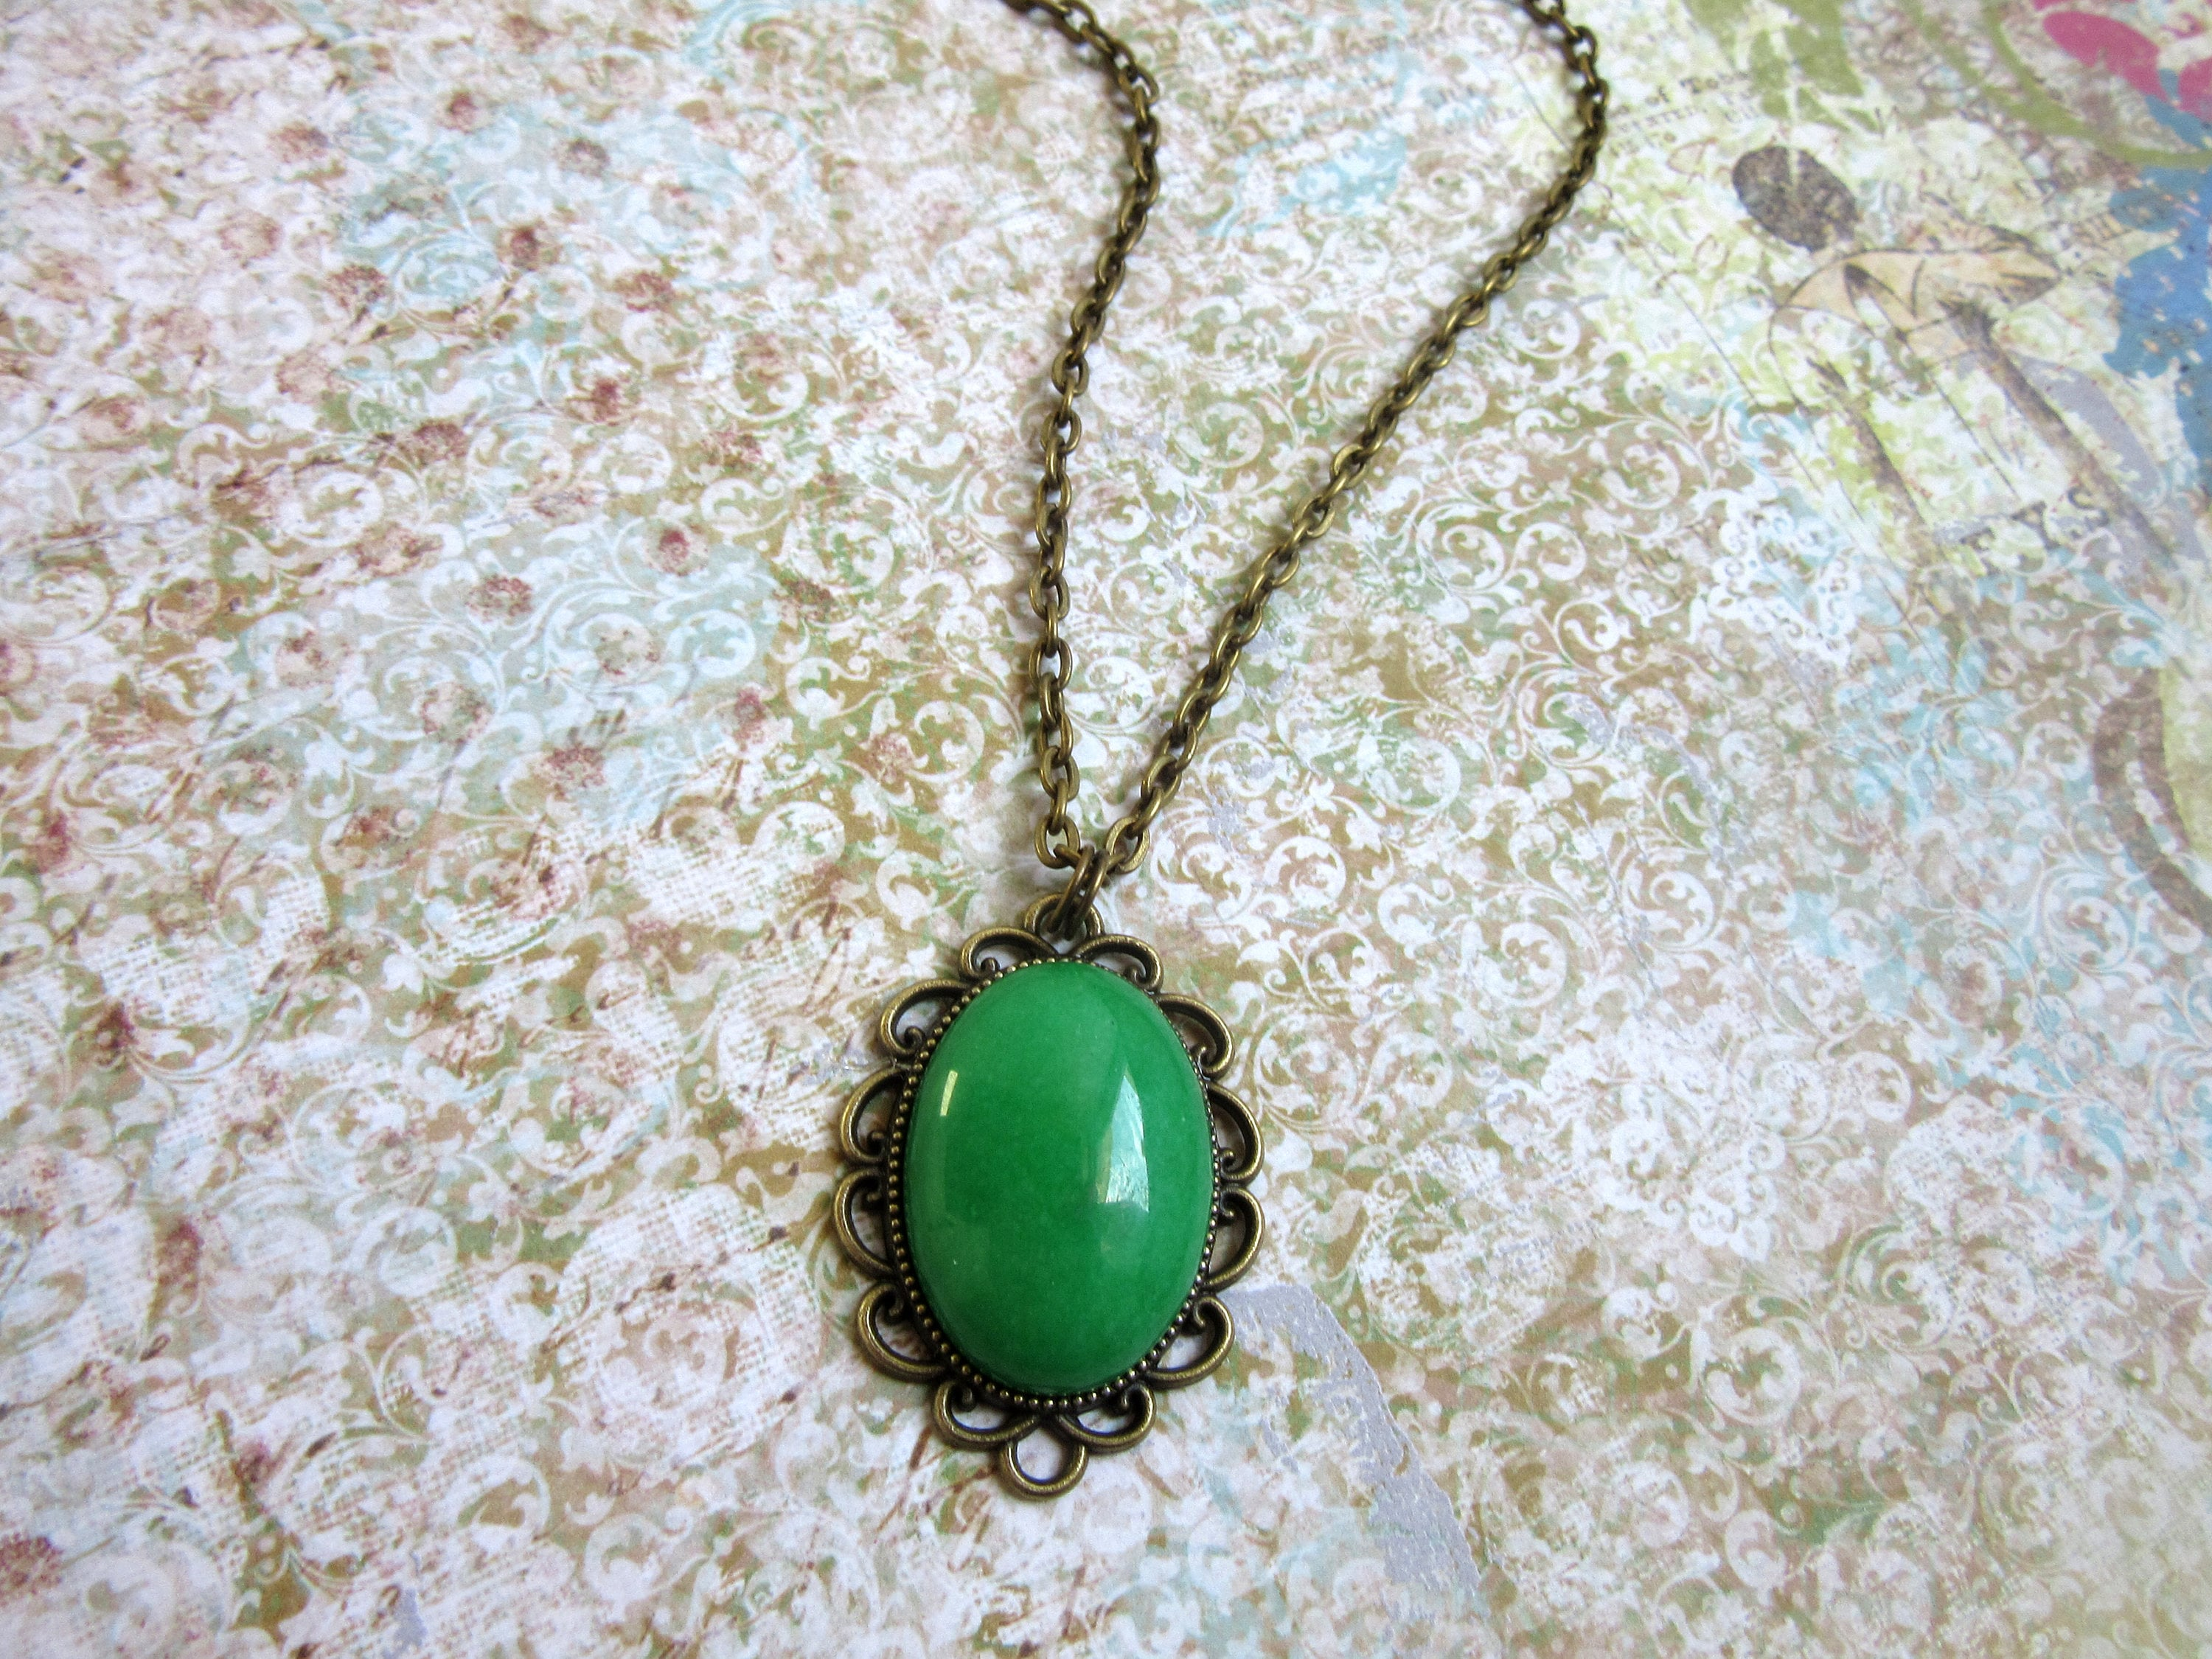 silver pendant sterling green pin jade shaped this rose necklace